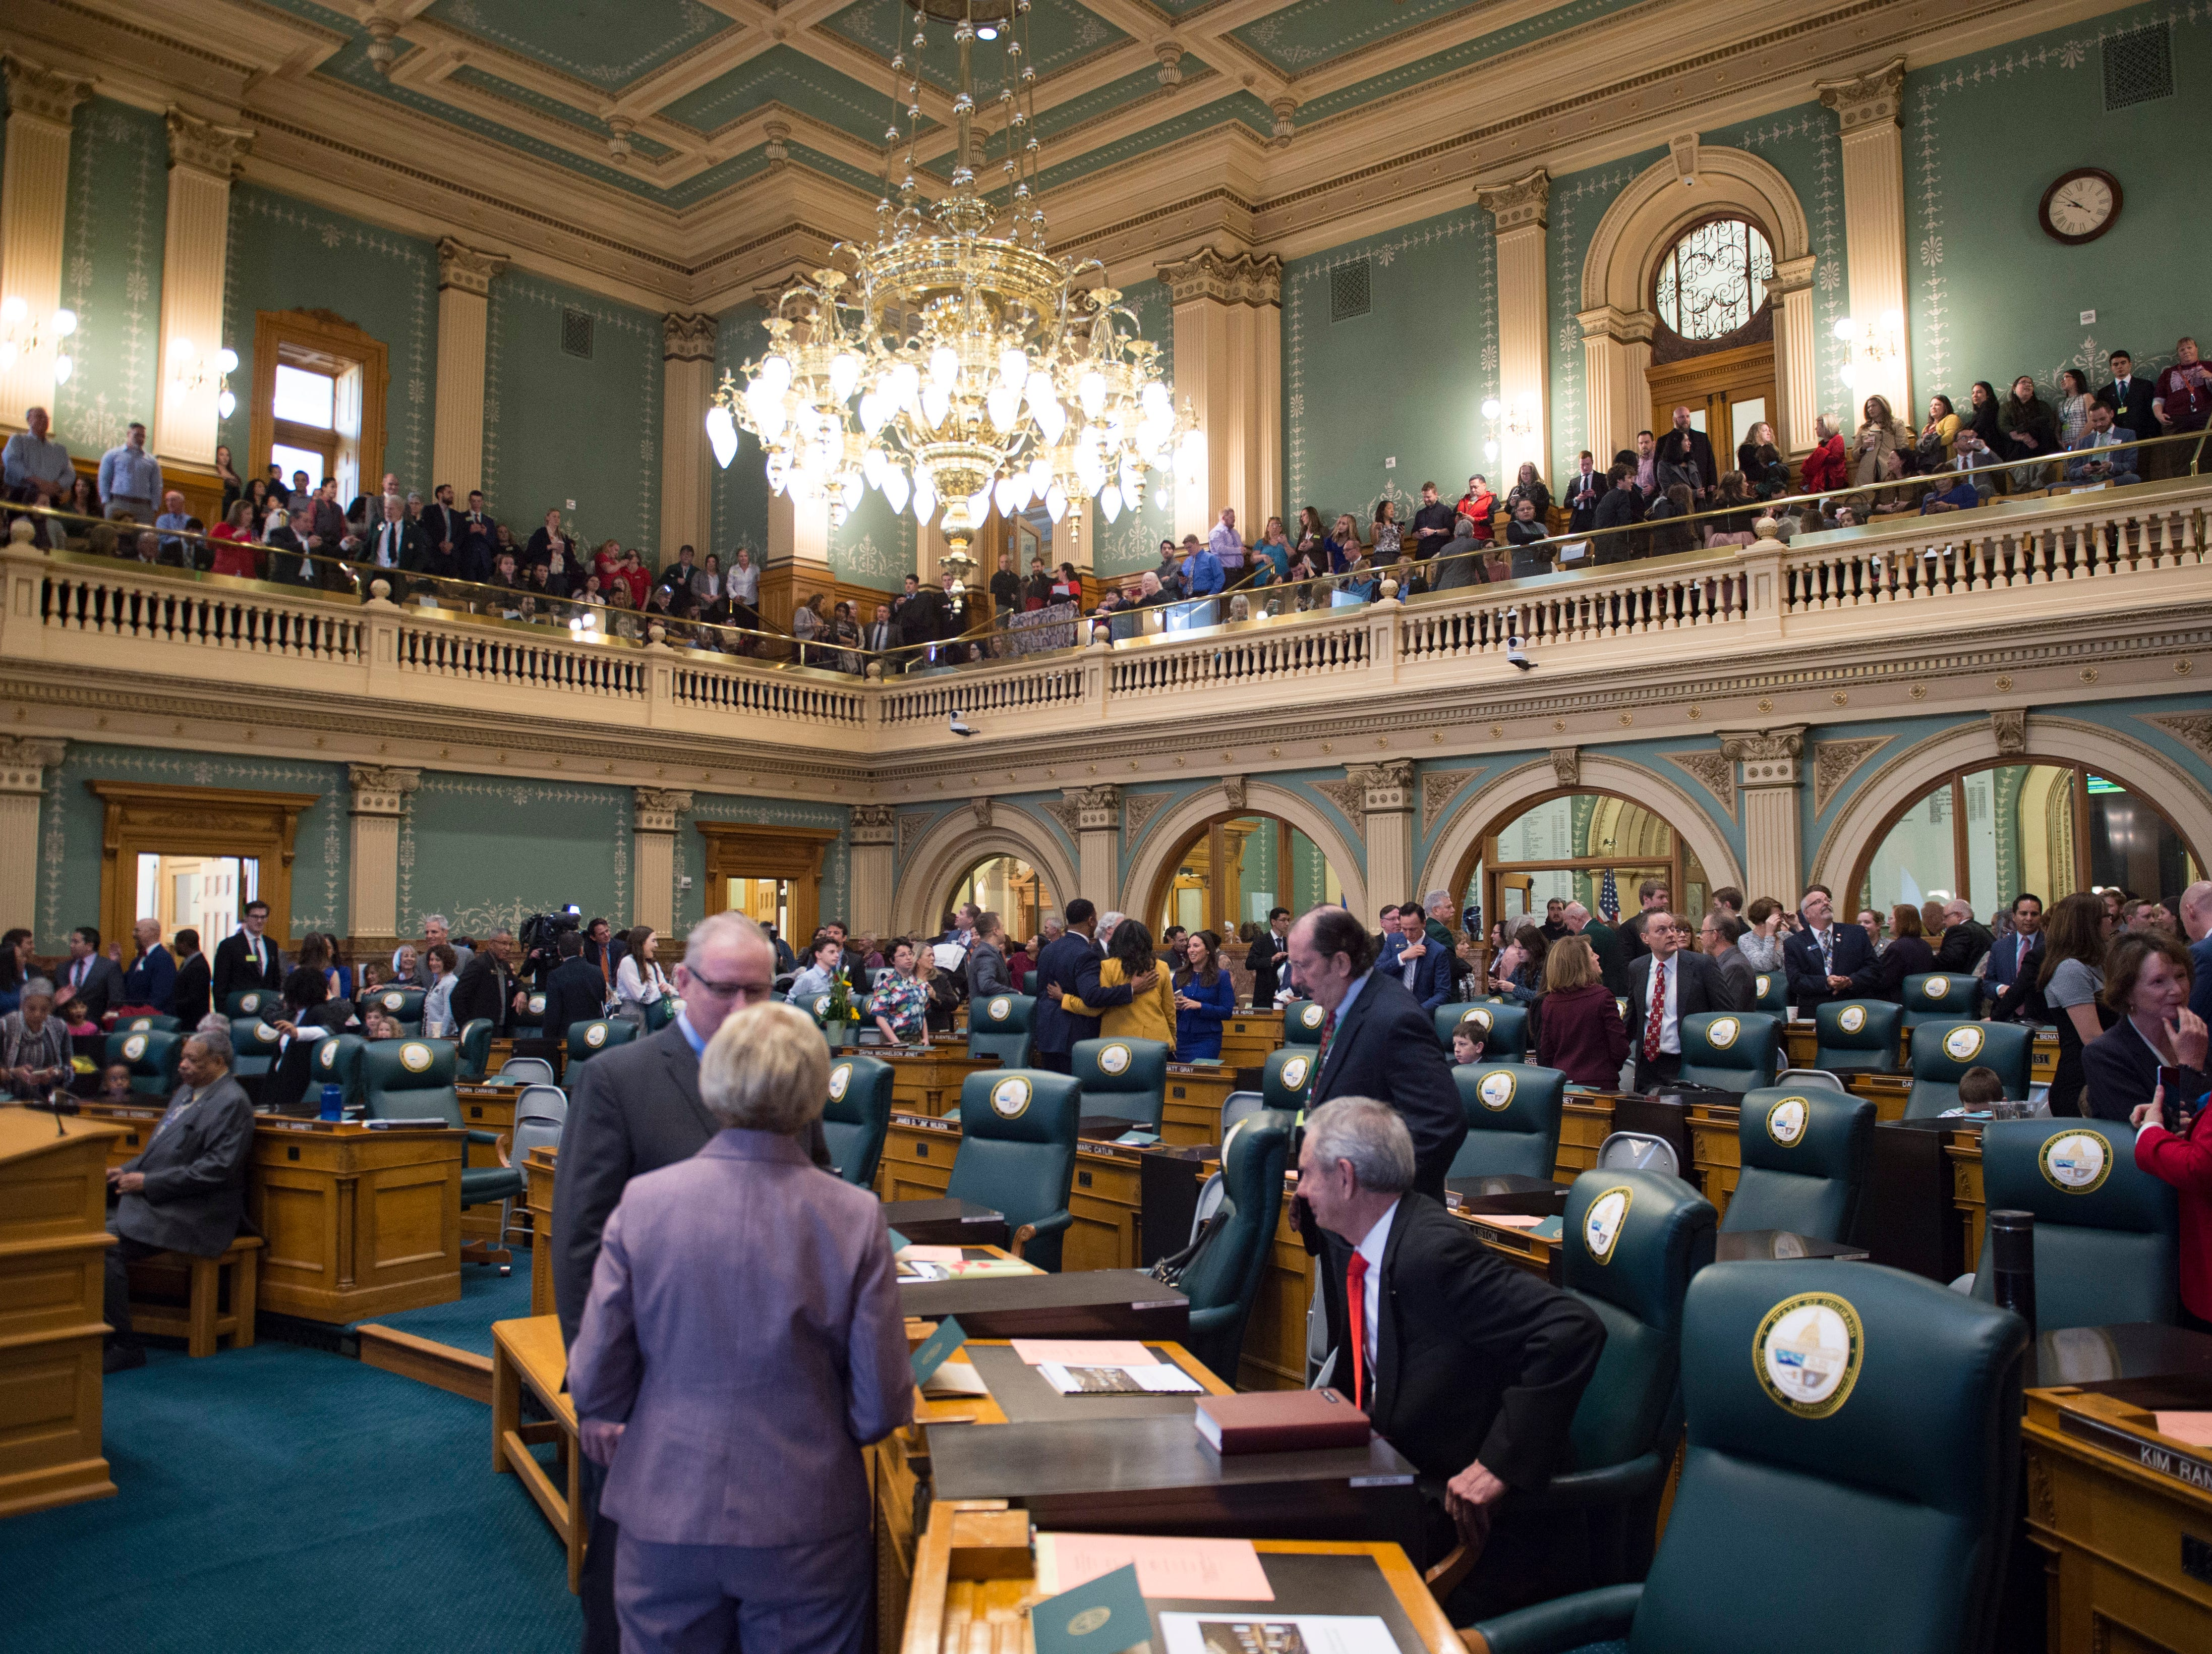 The Colorado House of Representatives take their seats as the 72nd General Assembly convenes at the Colorado State Capitol on Friday, January 4, 2019.